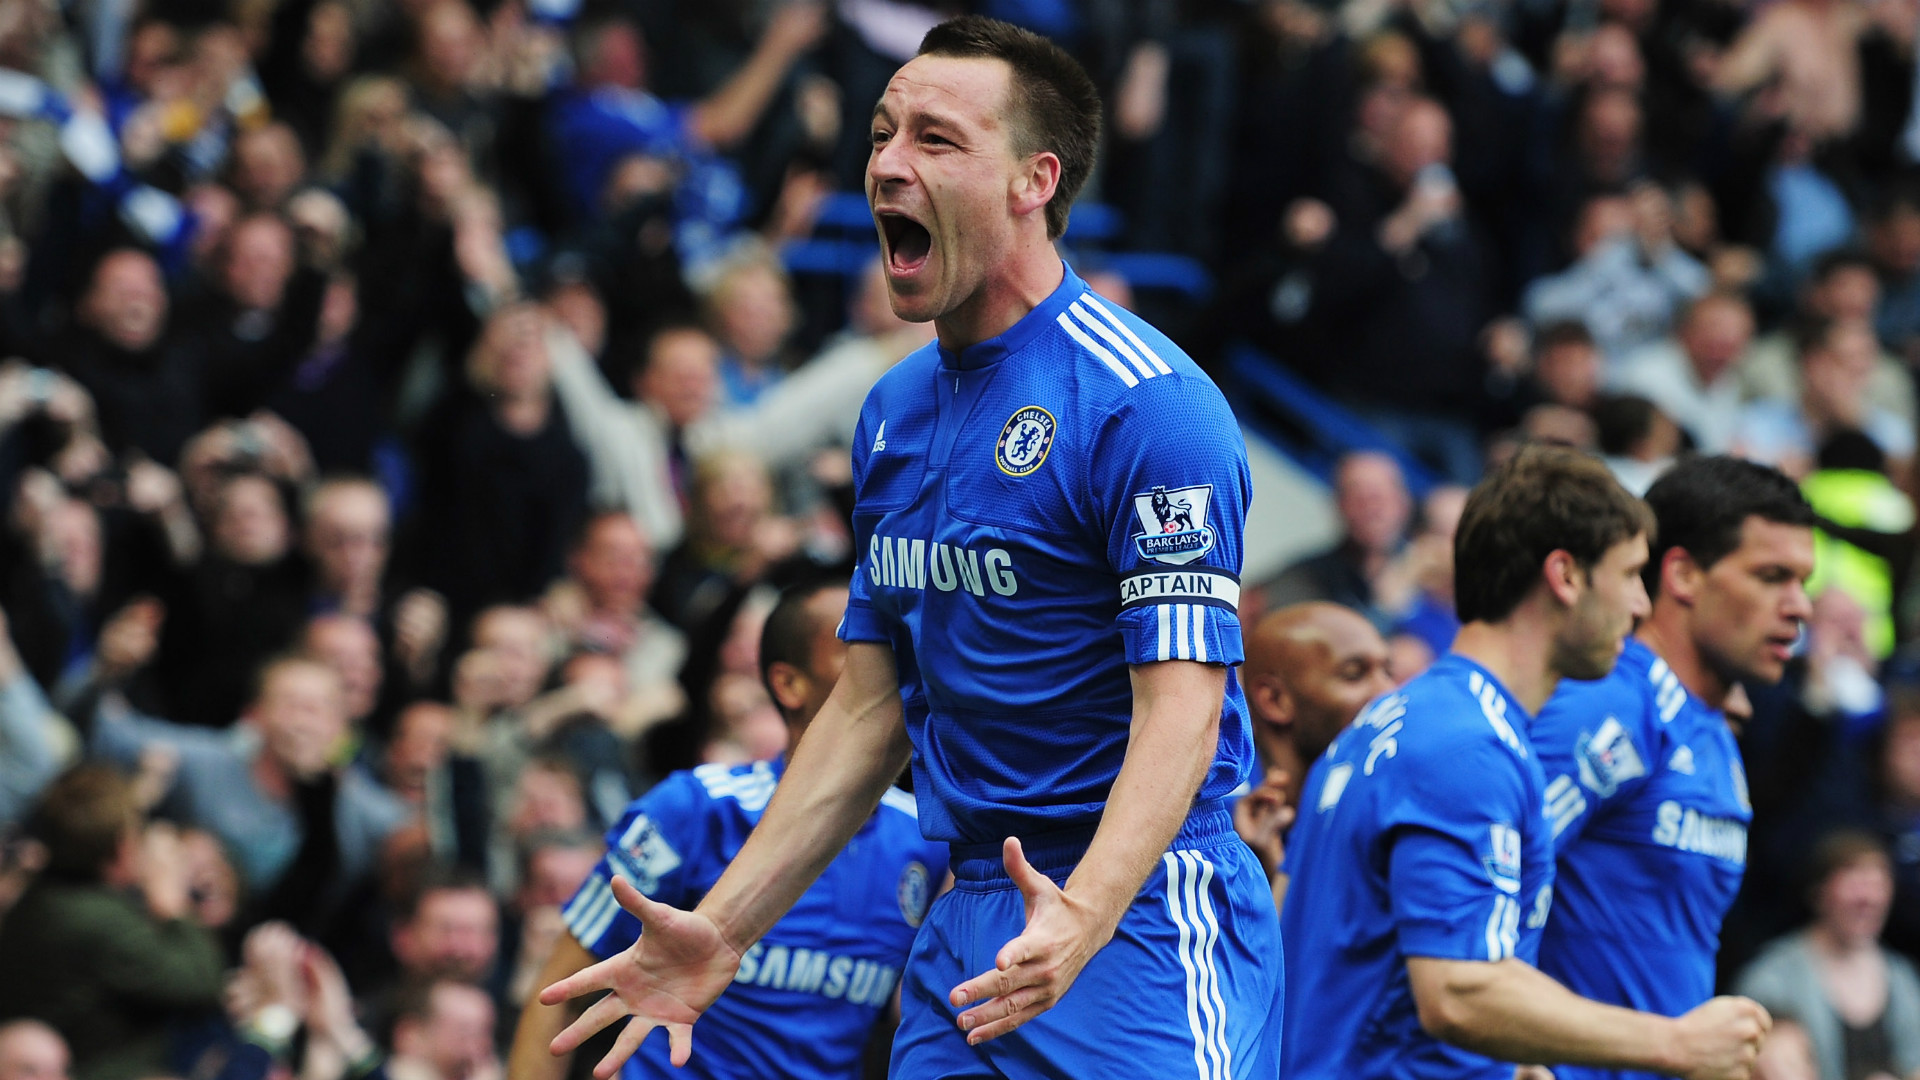 Top-scoring defender and Chelsea's record Premier League